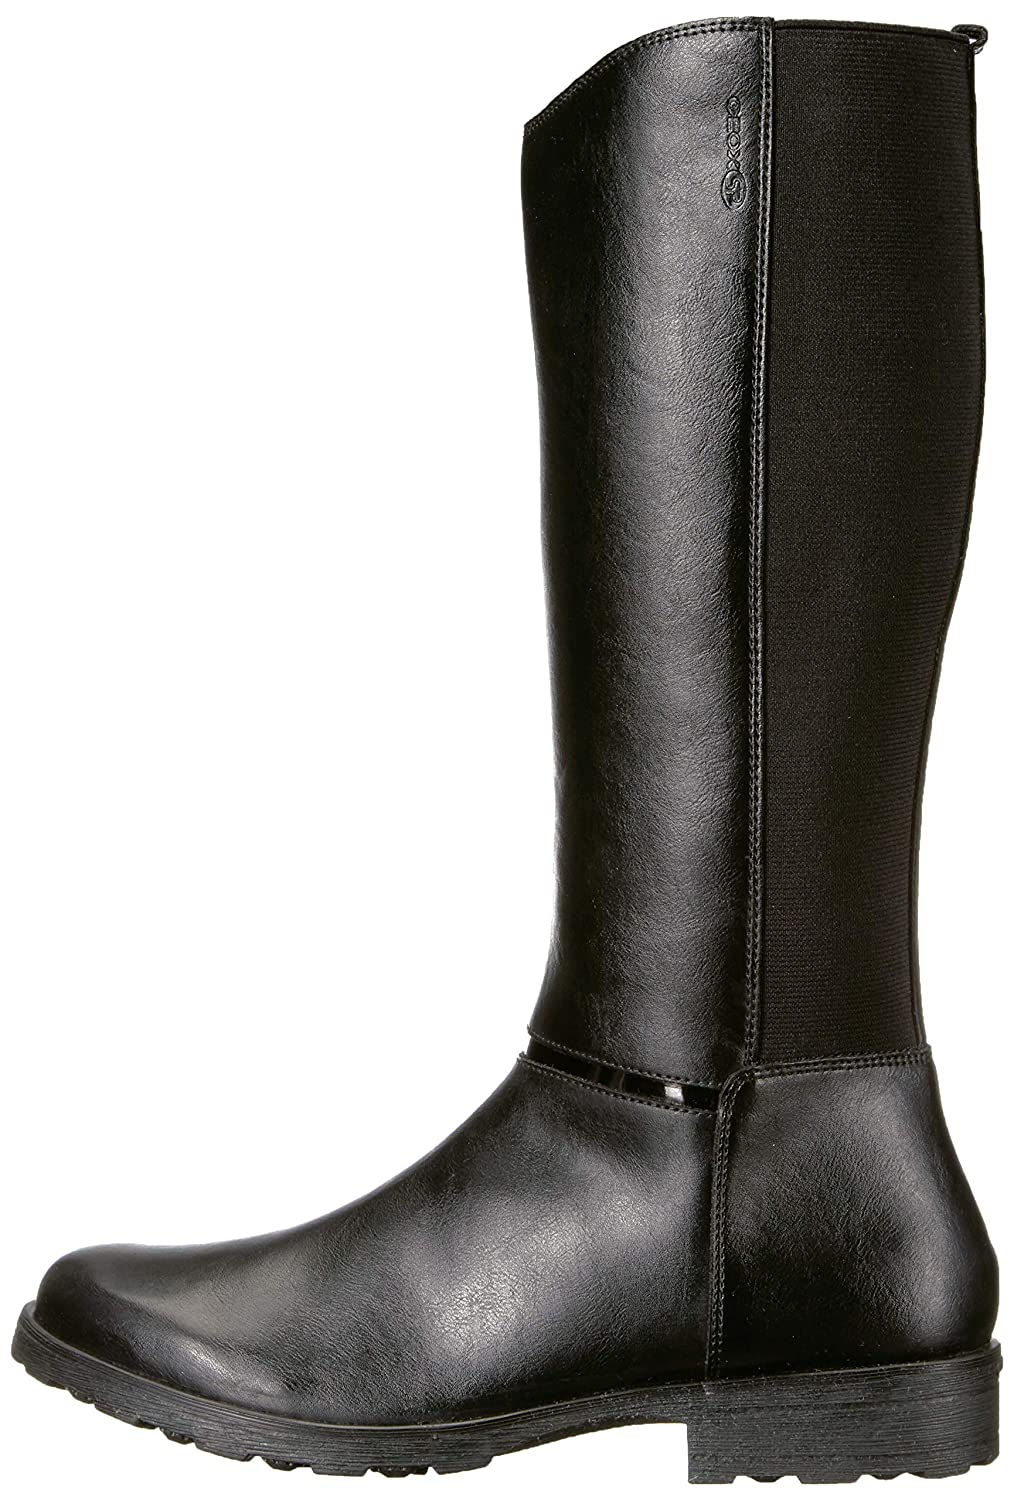 Geox Kids Olivia 11 Insulated Tall Boot Knee High